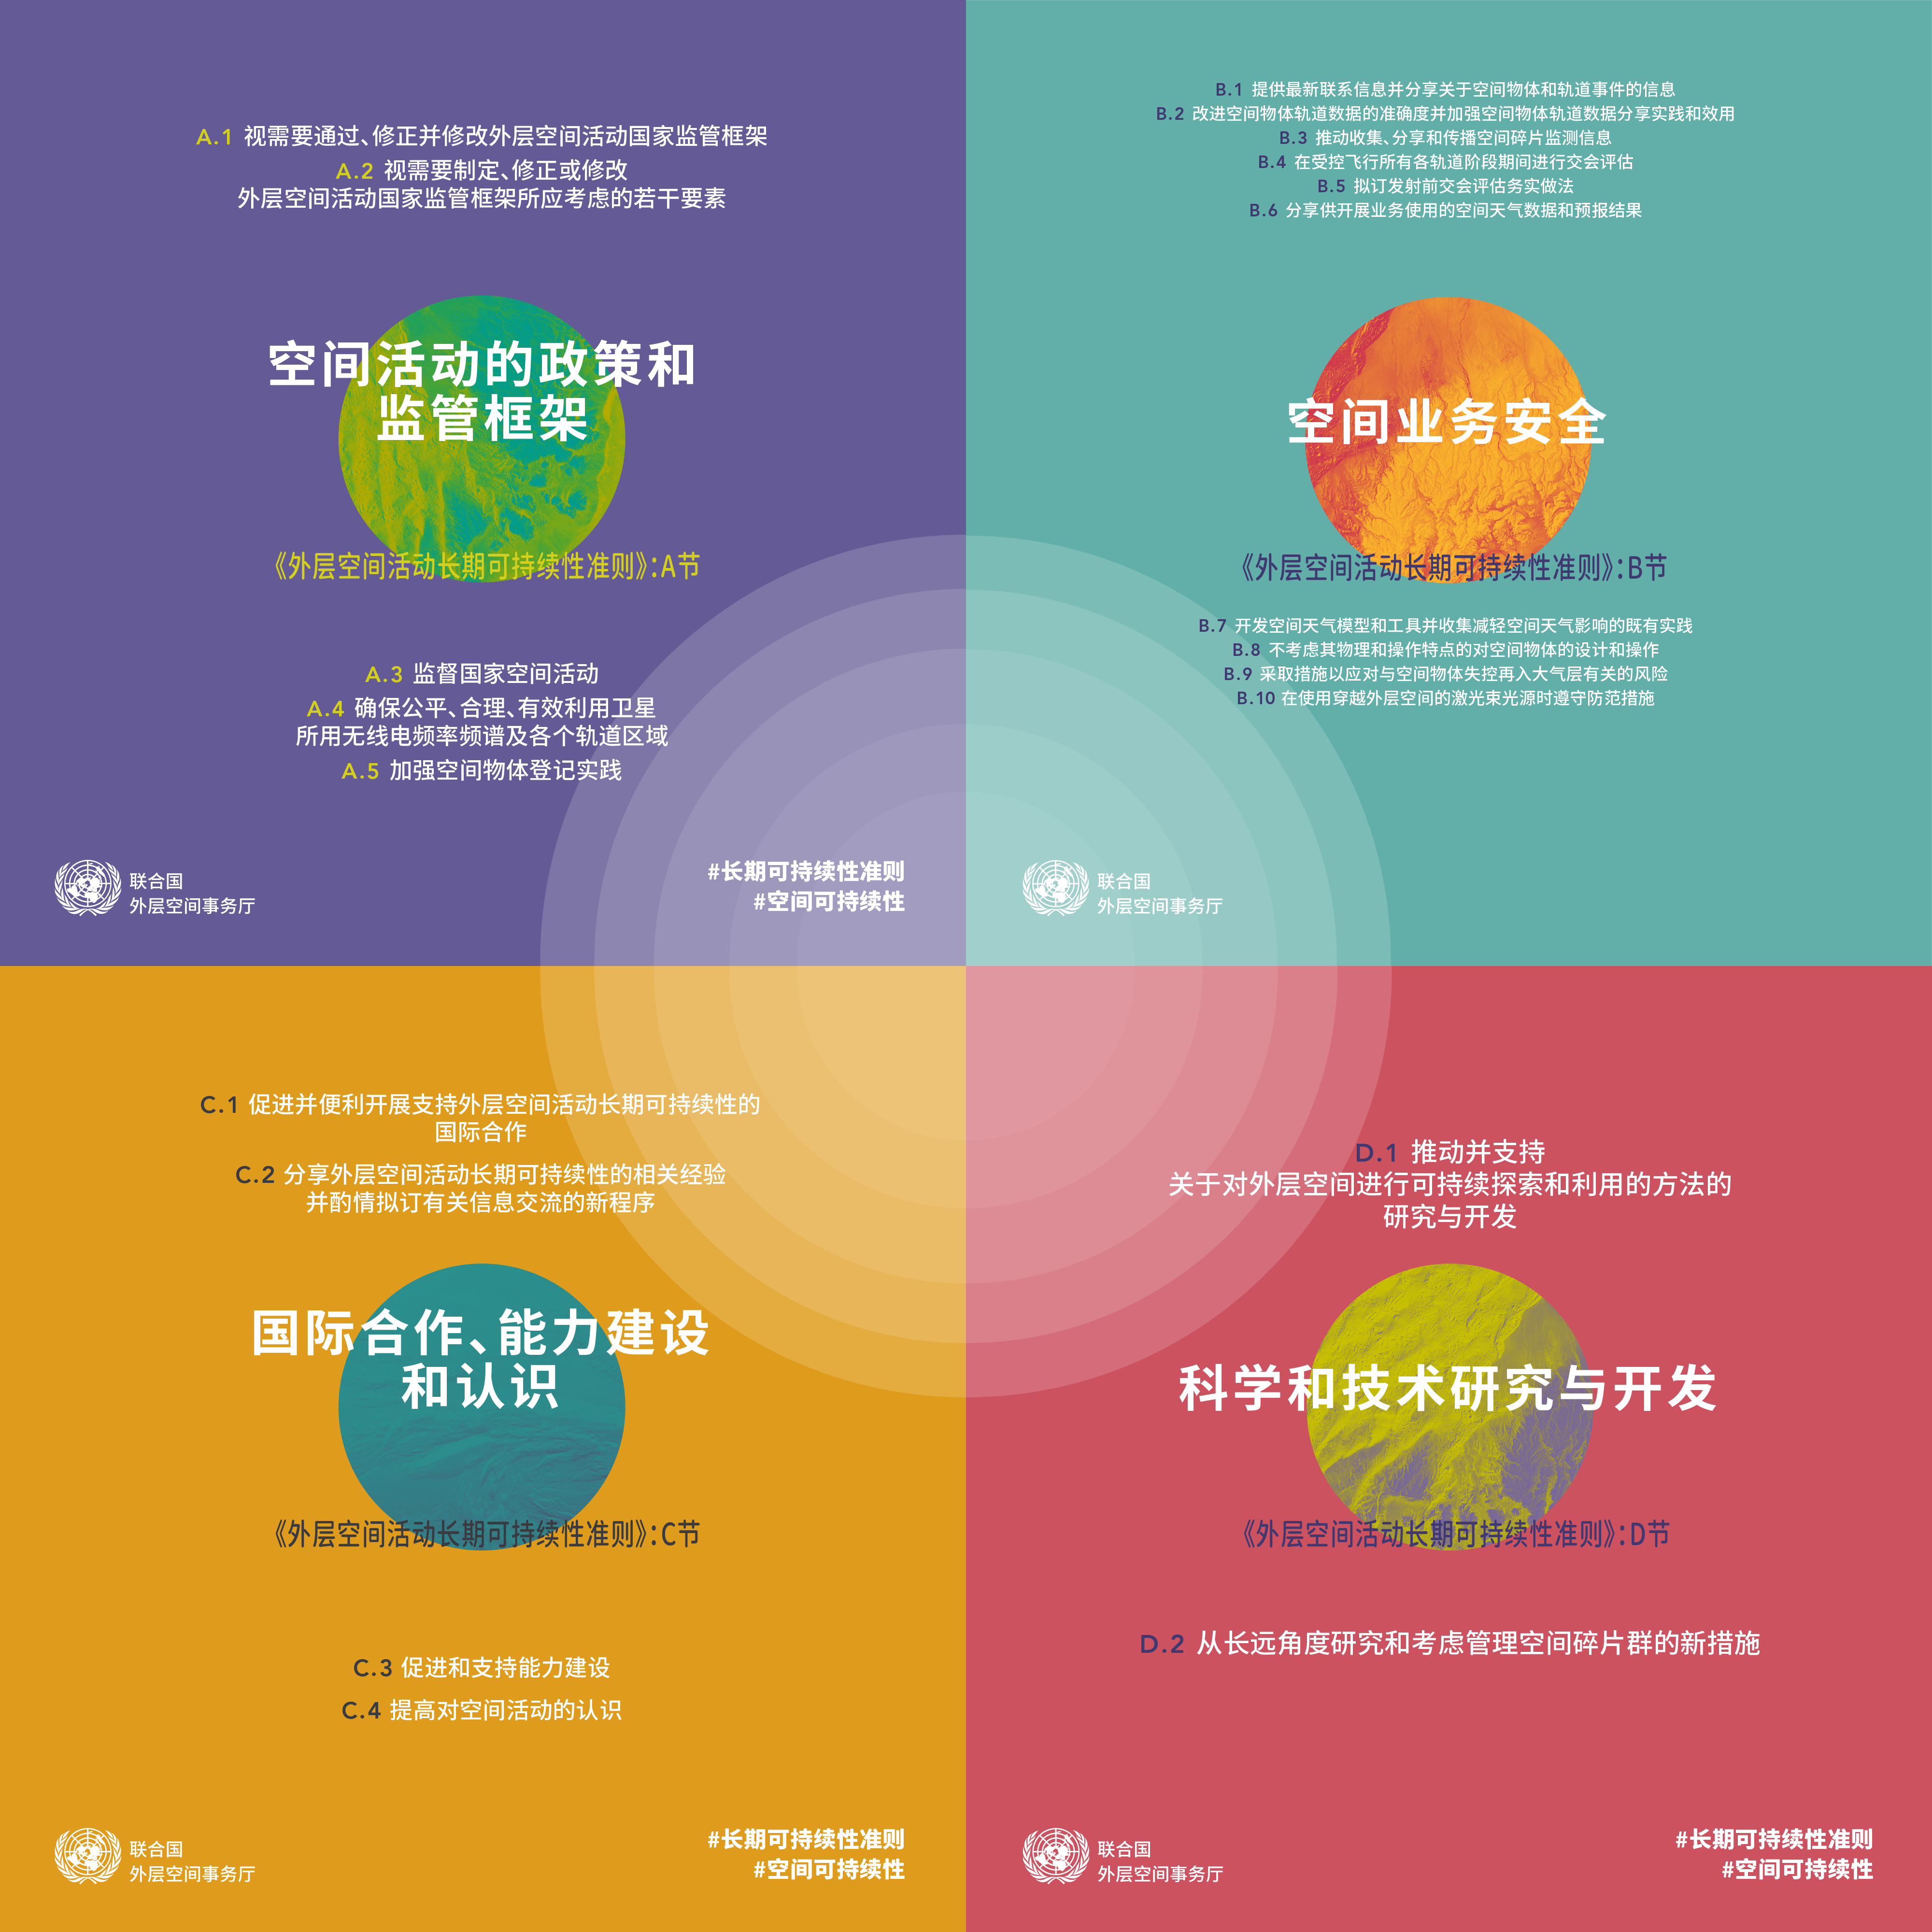 The Four Sections of the LTS Guidelines as one